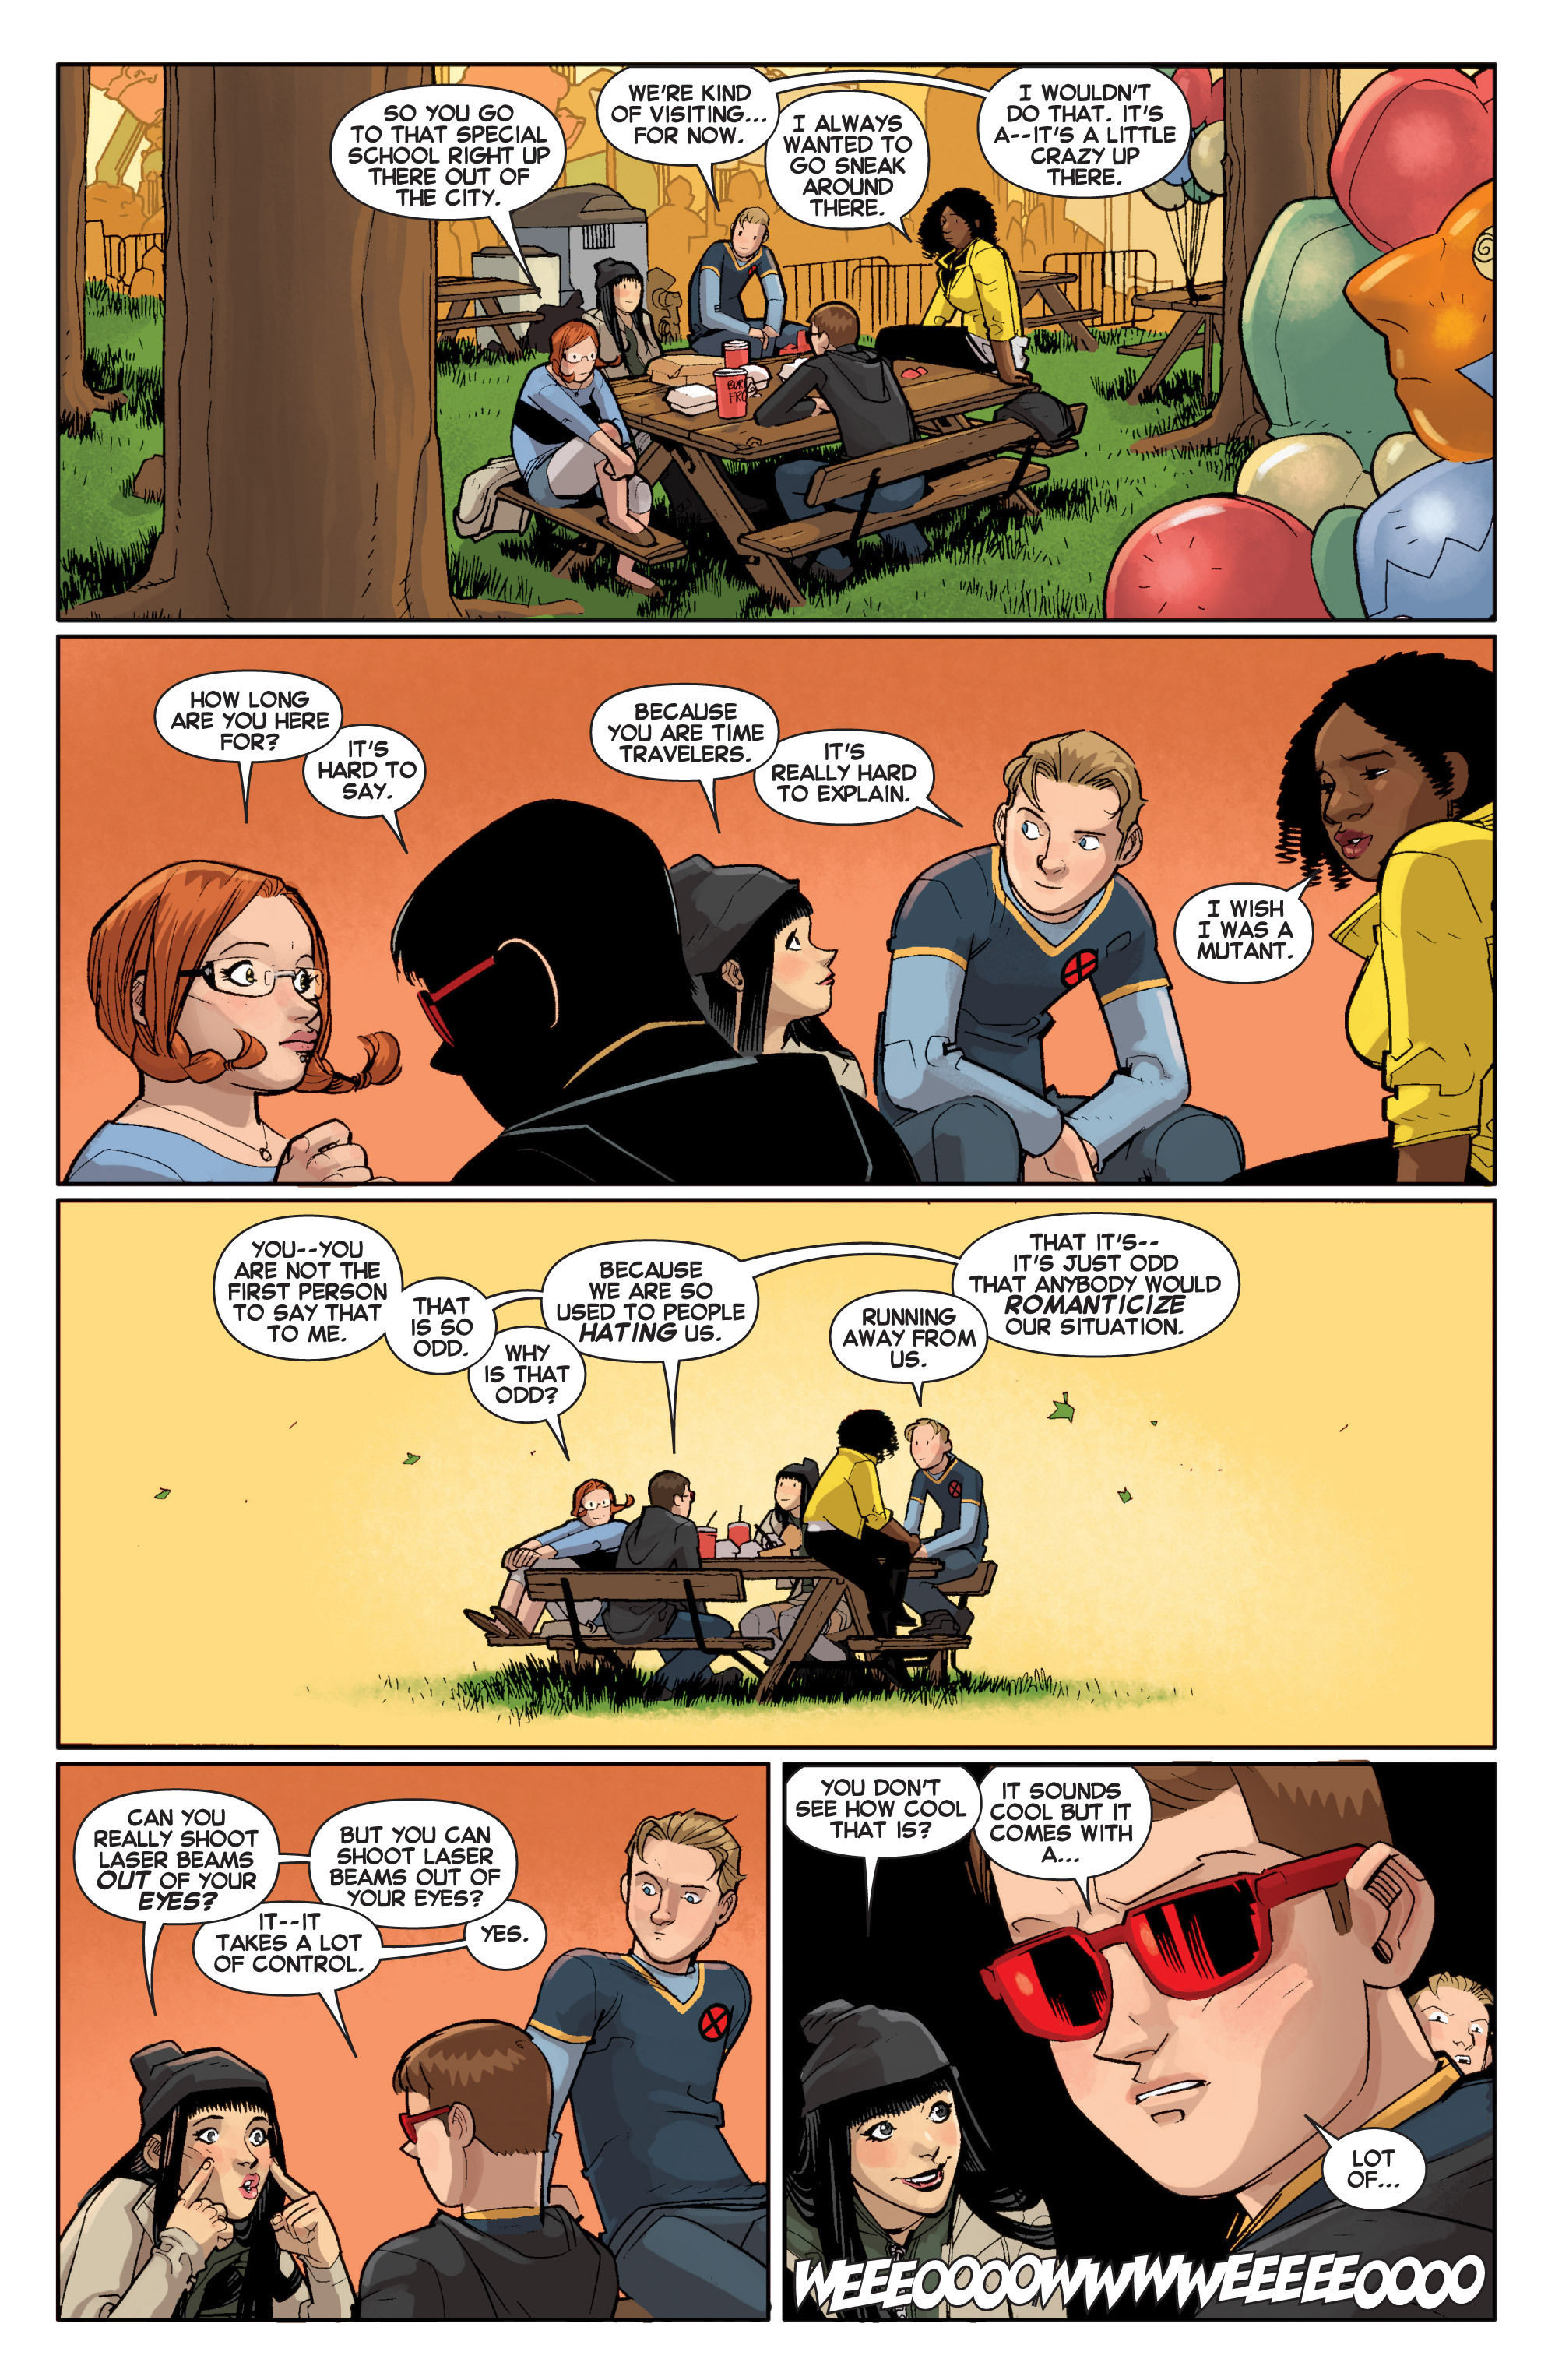 Read online All-New X-Men (2013) comic -  Issue # _Special - Out Of Their Depth - 105